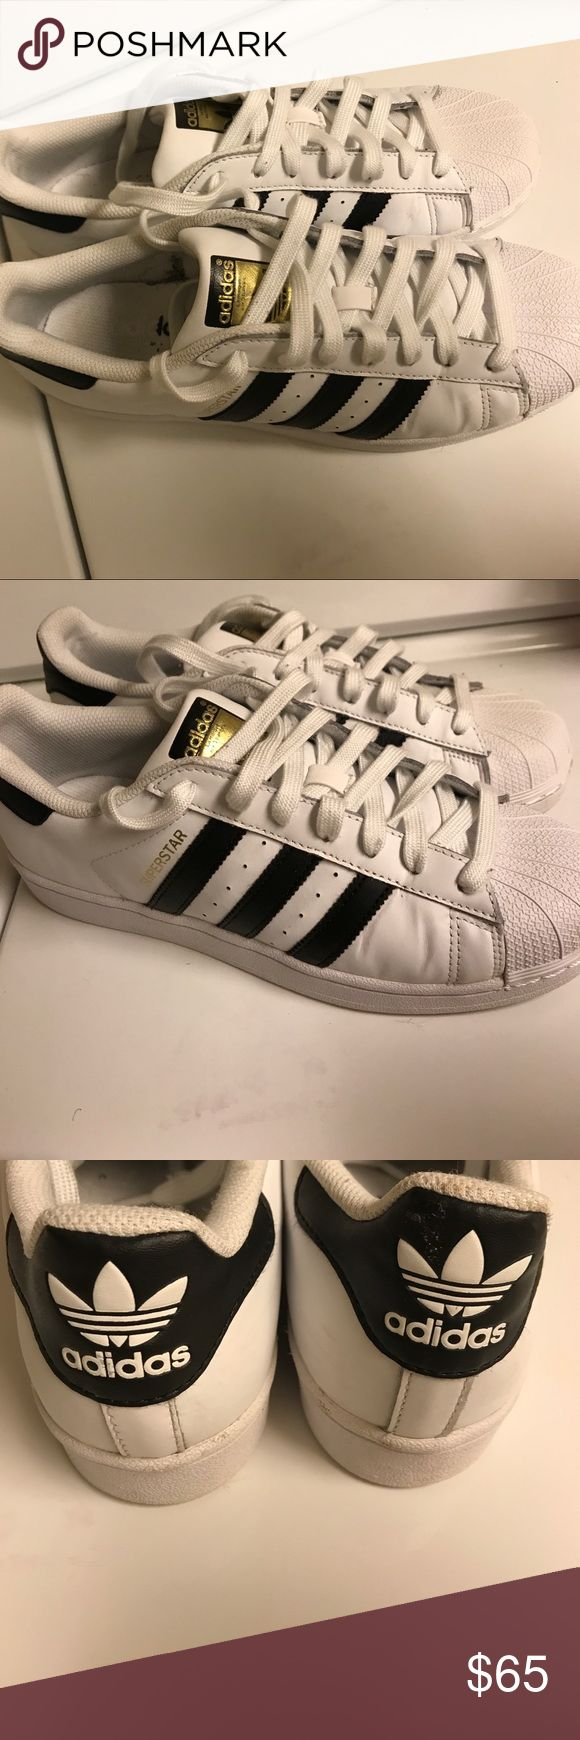 Men's Adidas Superstar Tennis Shoes-Sz 8 Like new . Only worn a few times . Adidas Shoes Sneakers